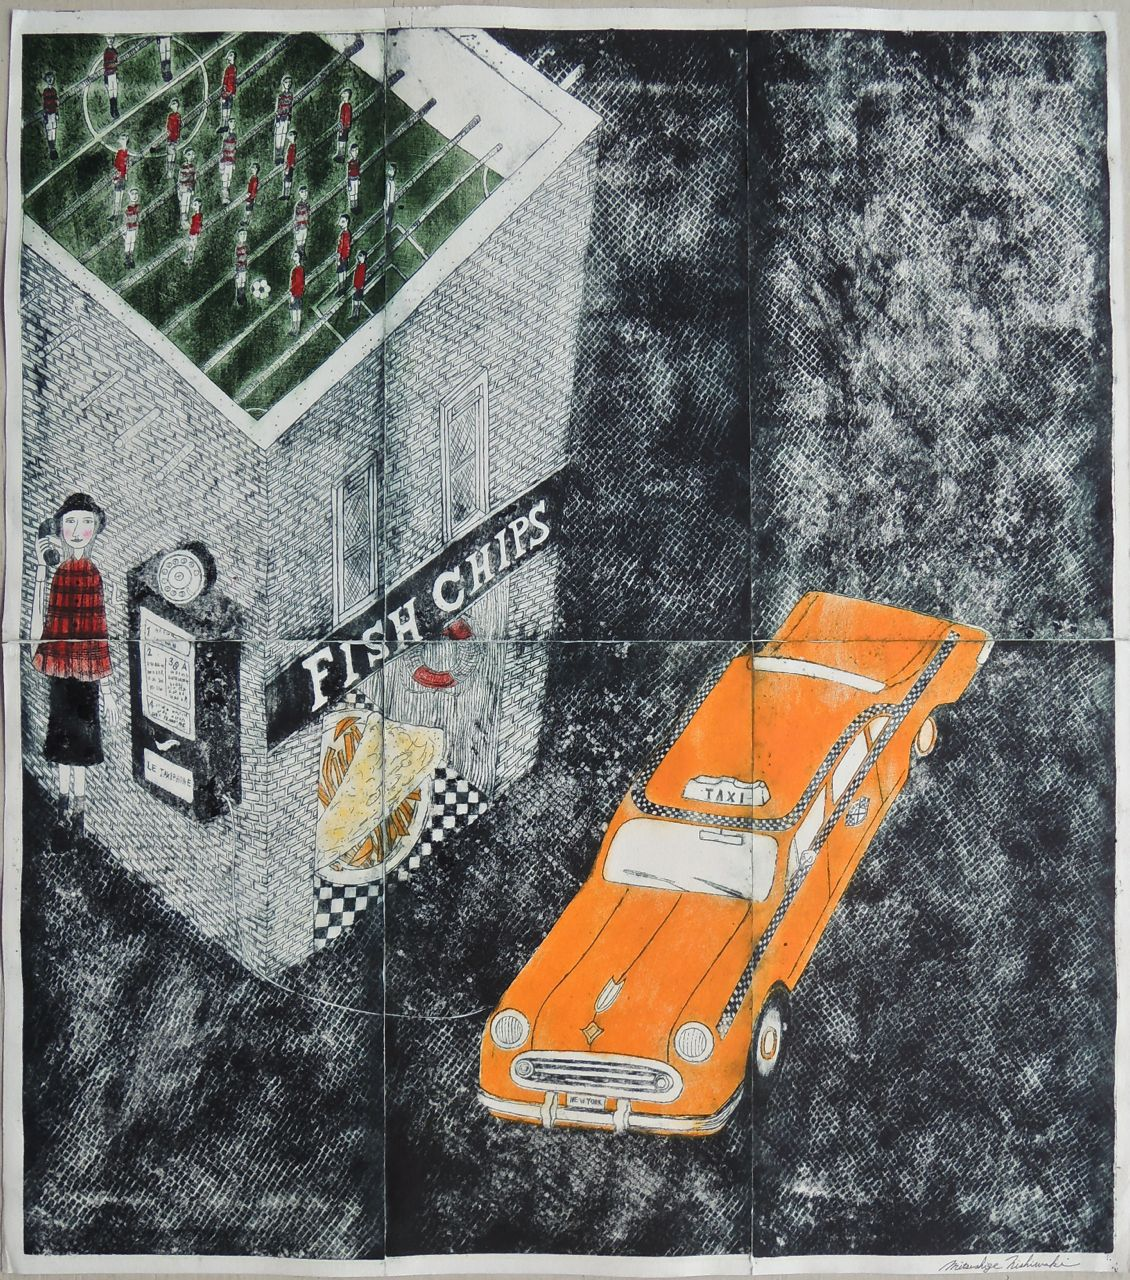 "Artist: Mitsushige Nishiwaki  Name: Fish & Chips  Size: 33.5""x30""  Price:  Inquire   Method: etching  Condition: signed print"